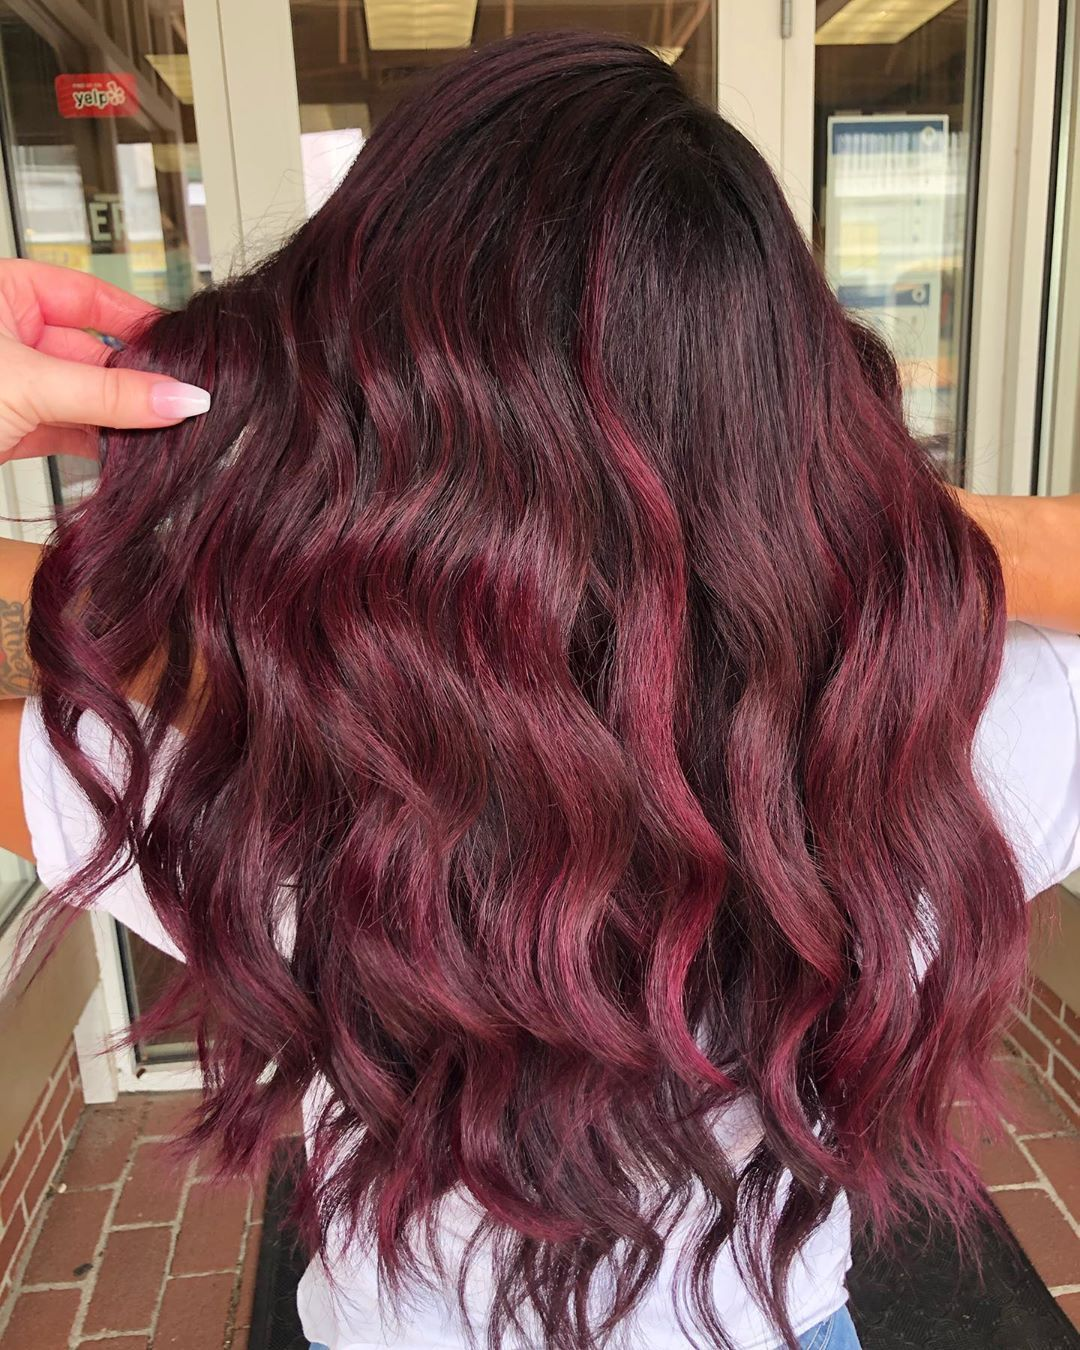 Pin On Burgundy Hair Colors